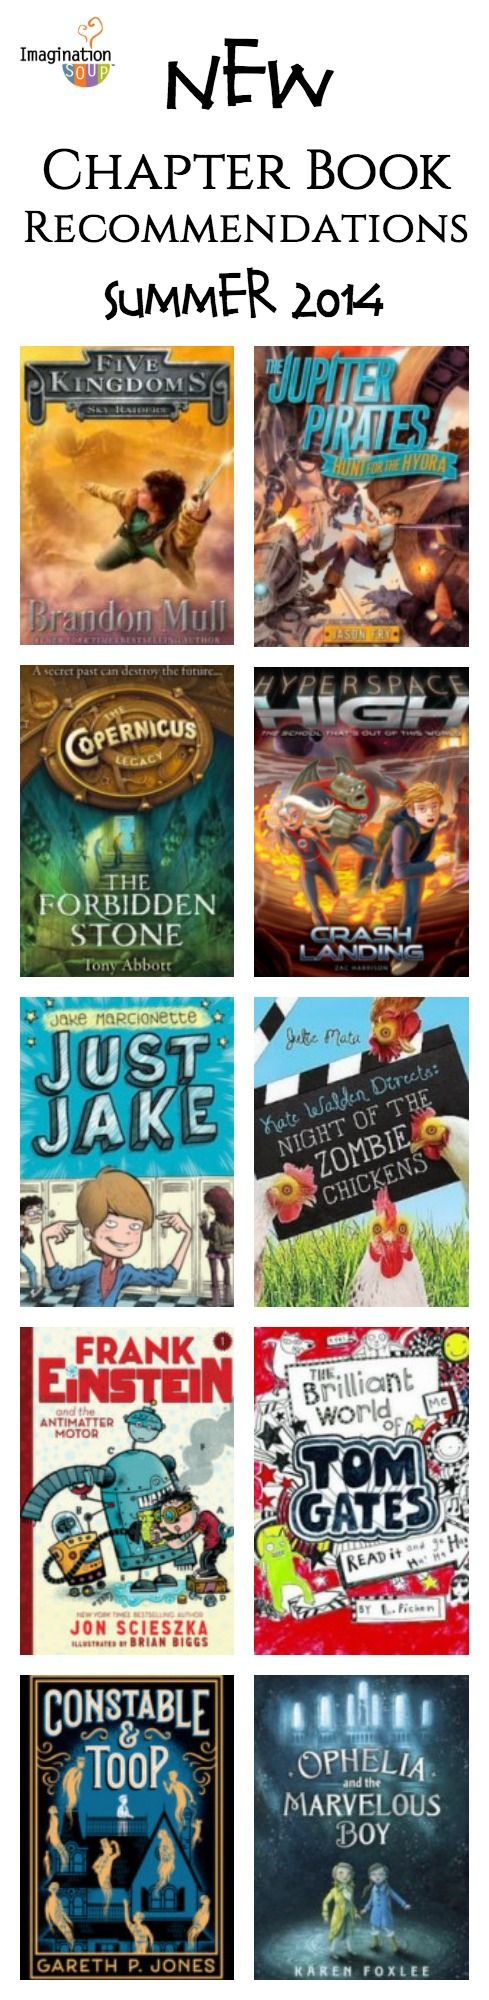 new chapter book recommendations for kids ages 8 and up